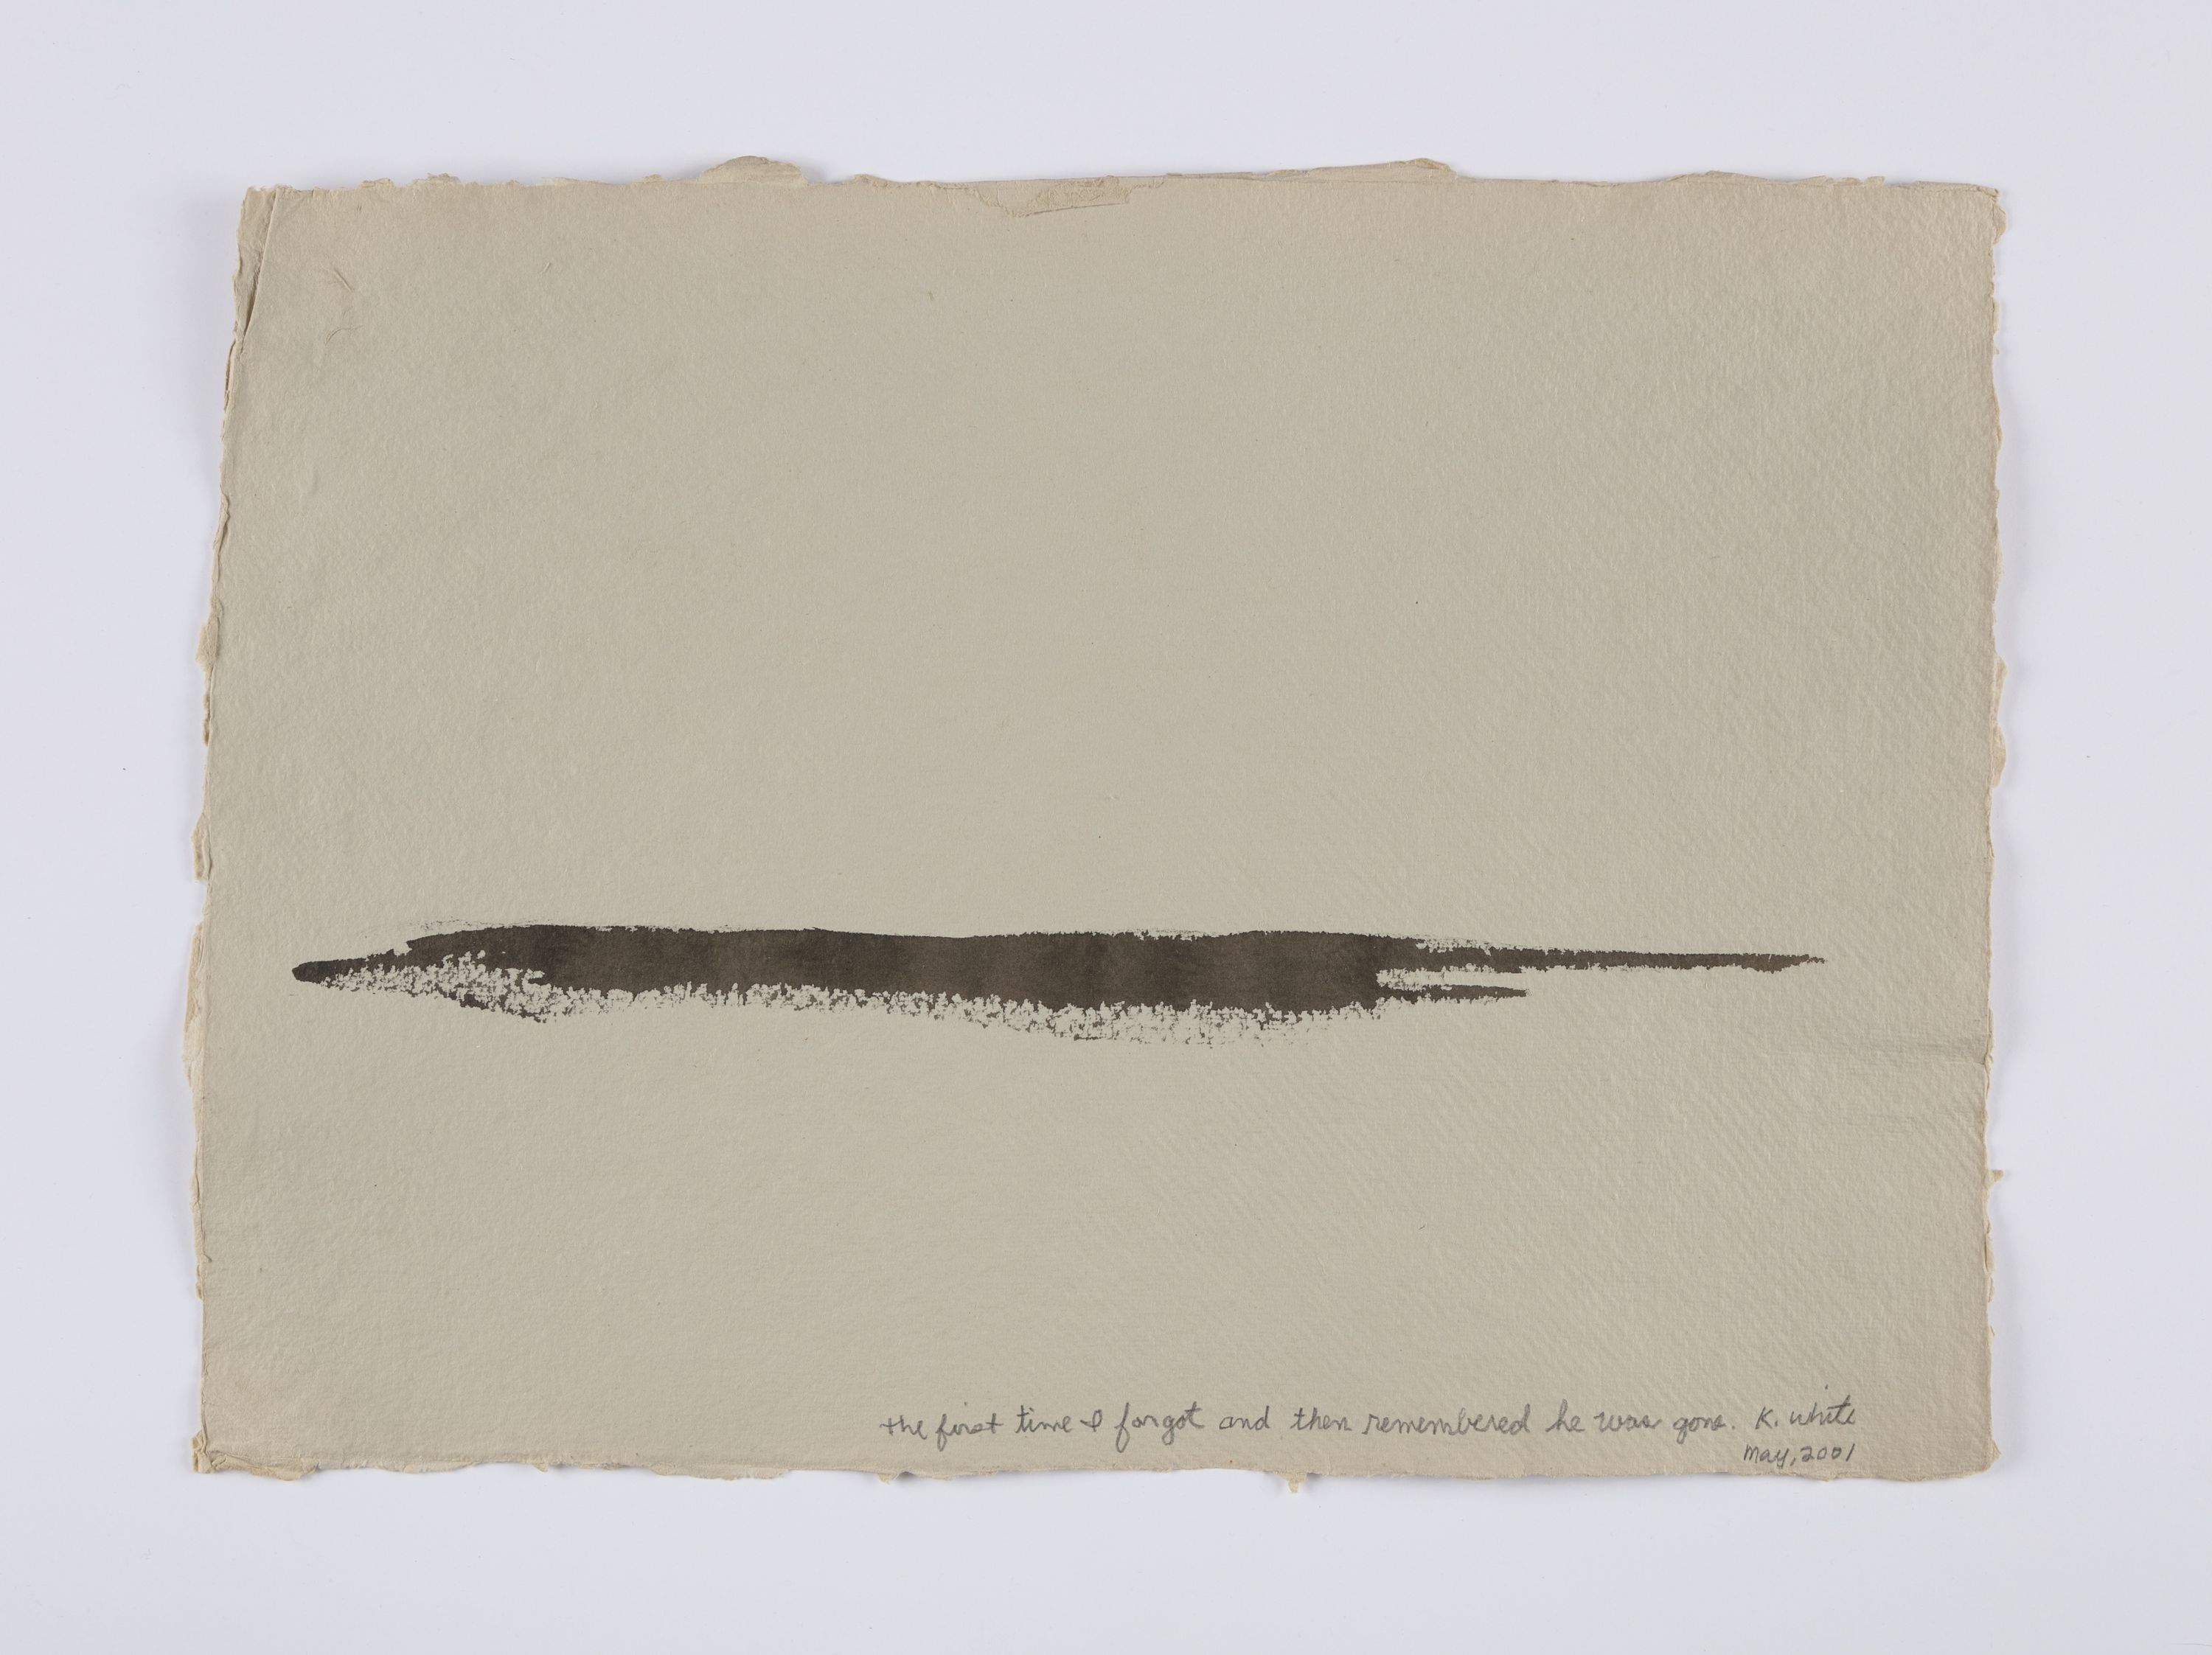 """A close-up view of one of the drawings in """"A Year of Firsts,"""" featuring a long, wide brown mark"""